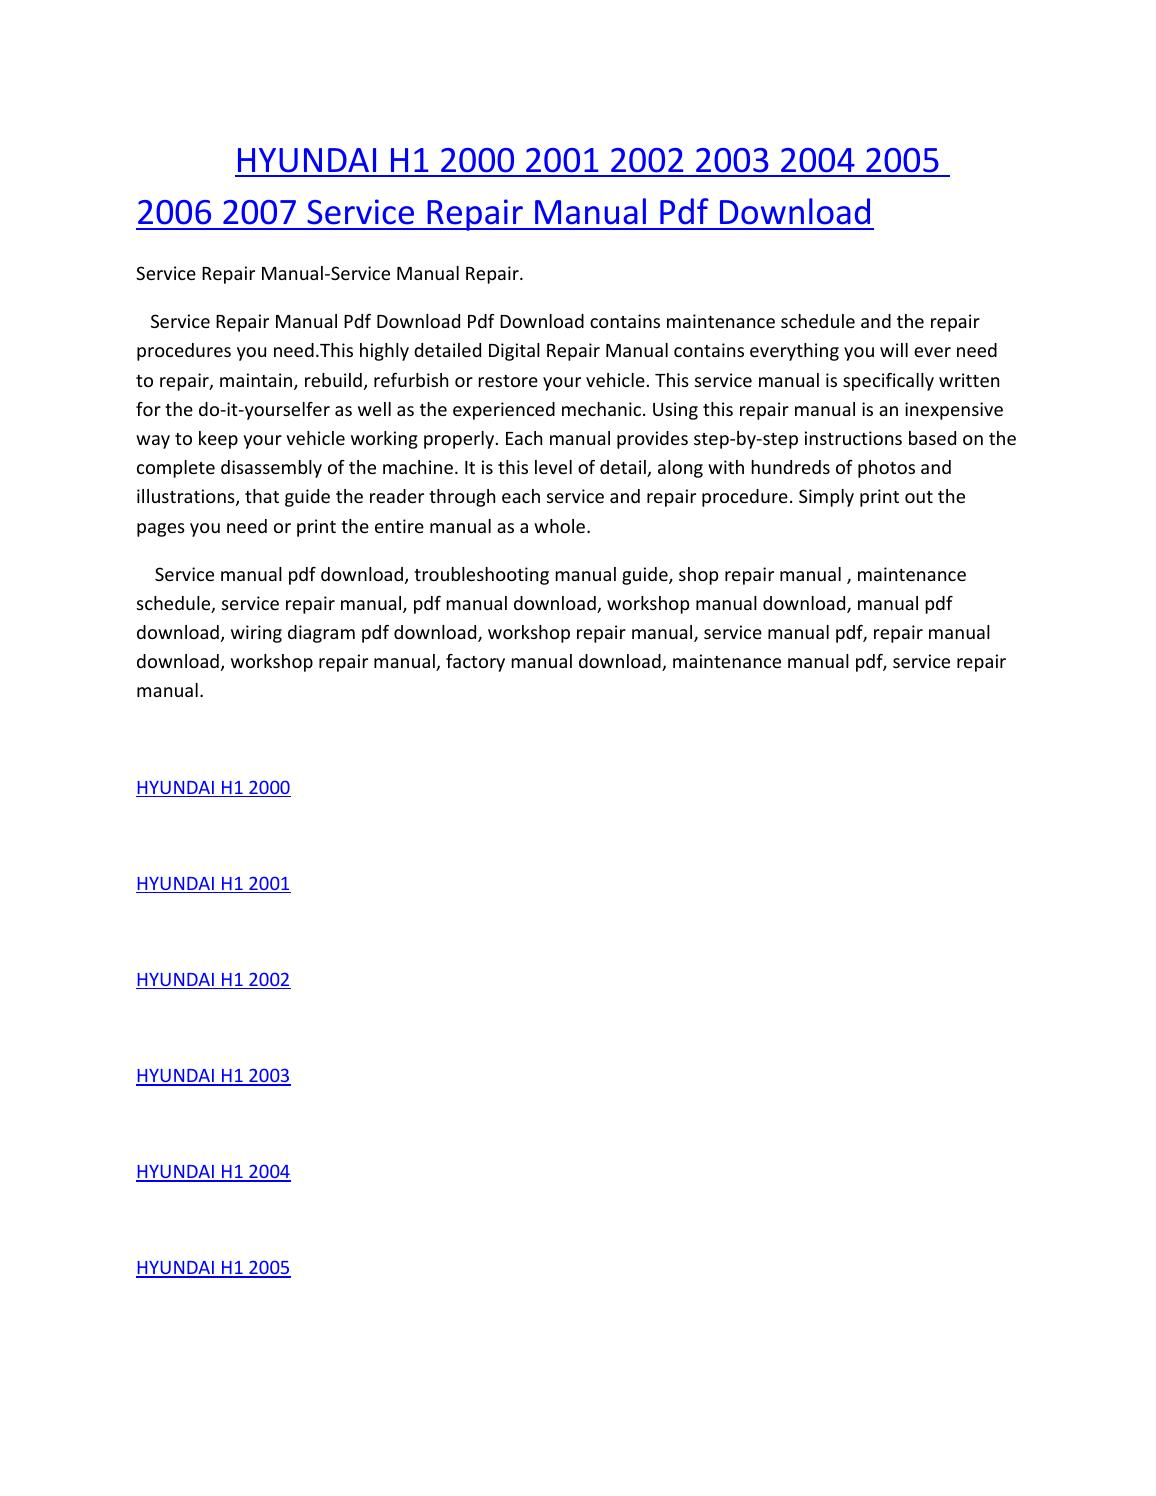 opel astra zafira service repair manual 1998 1999 2000 download